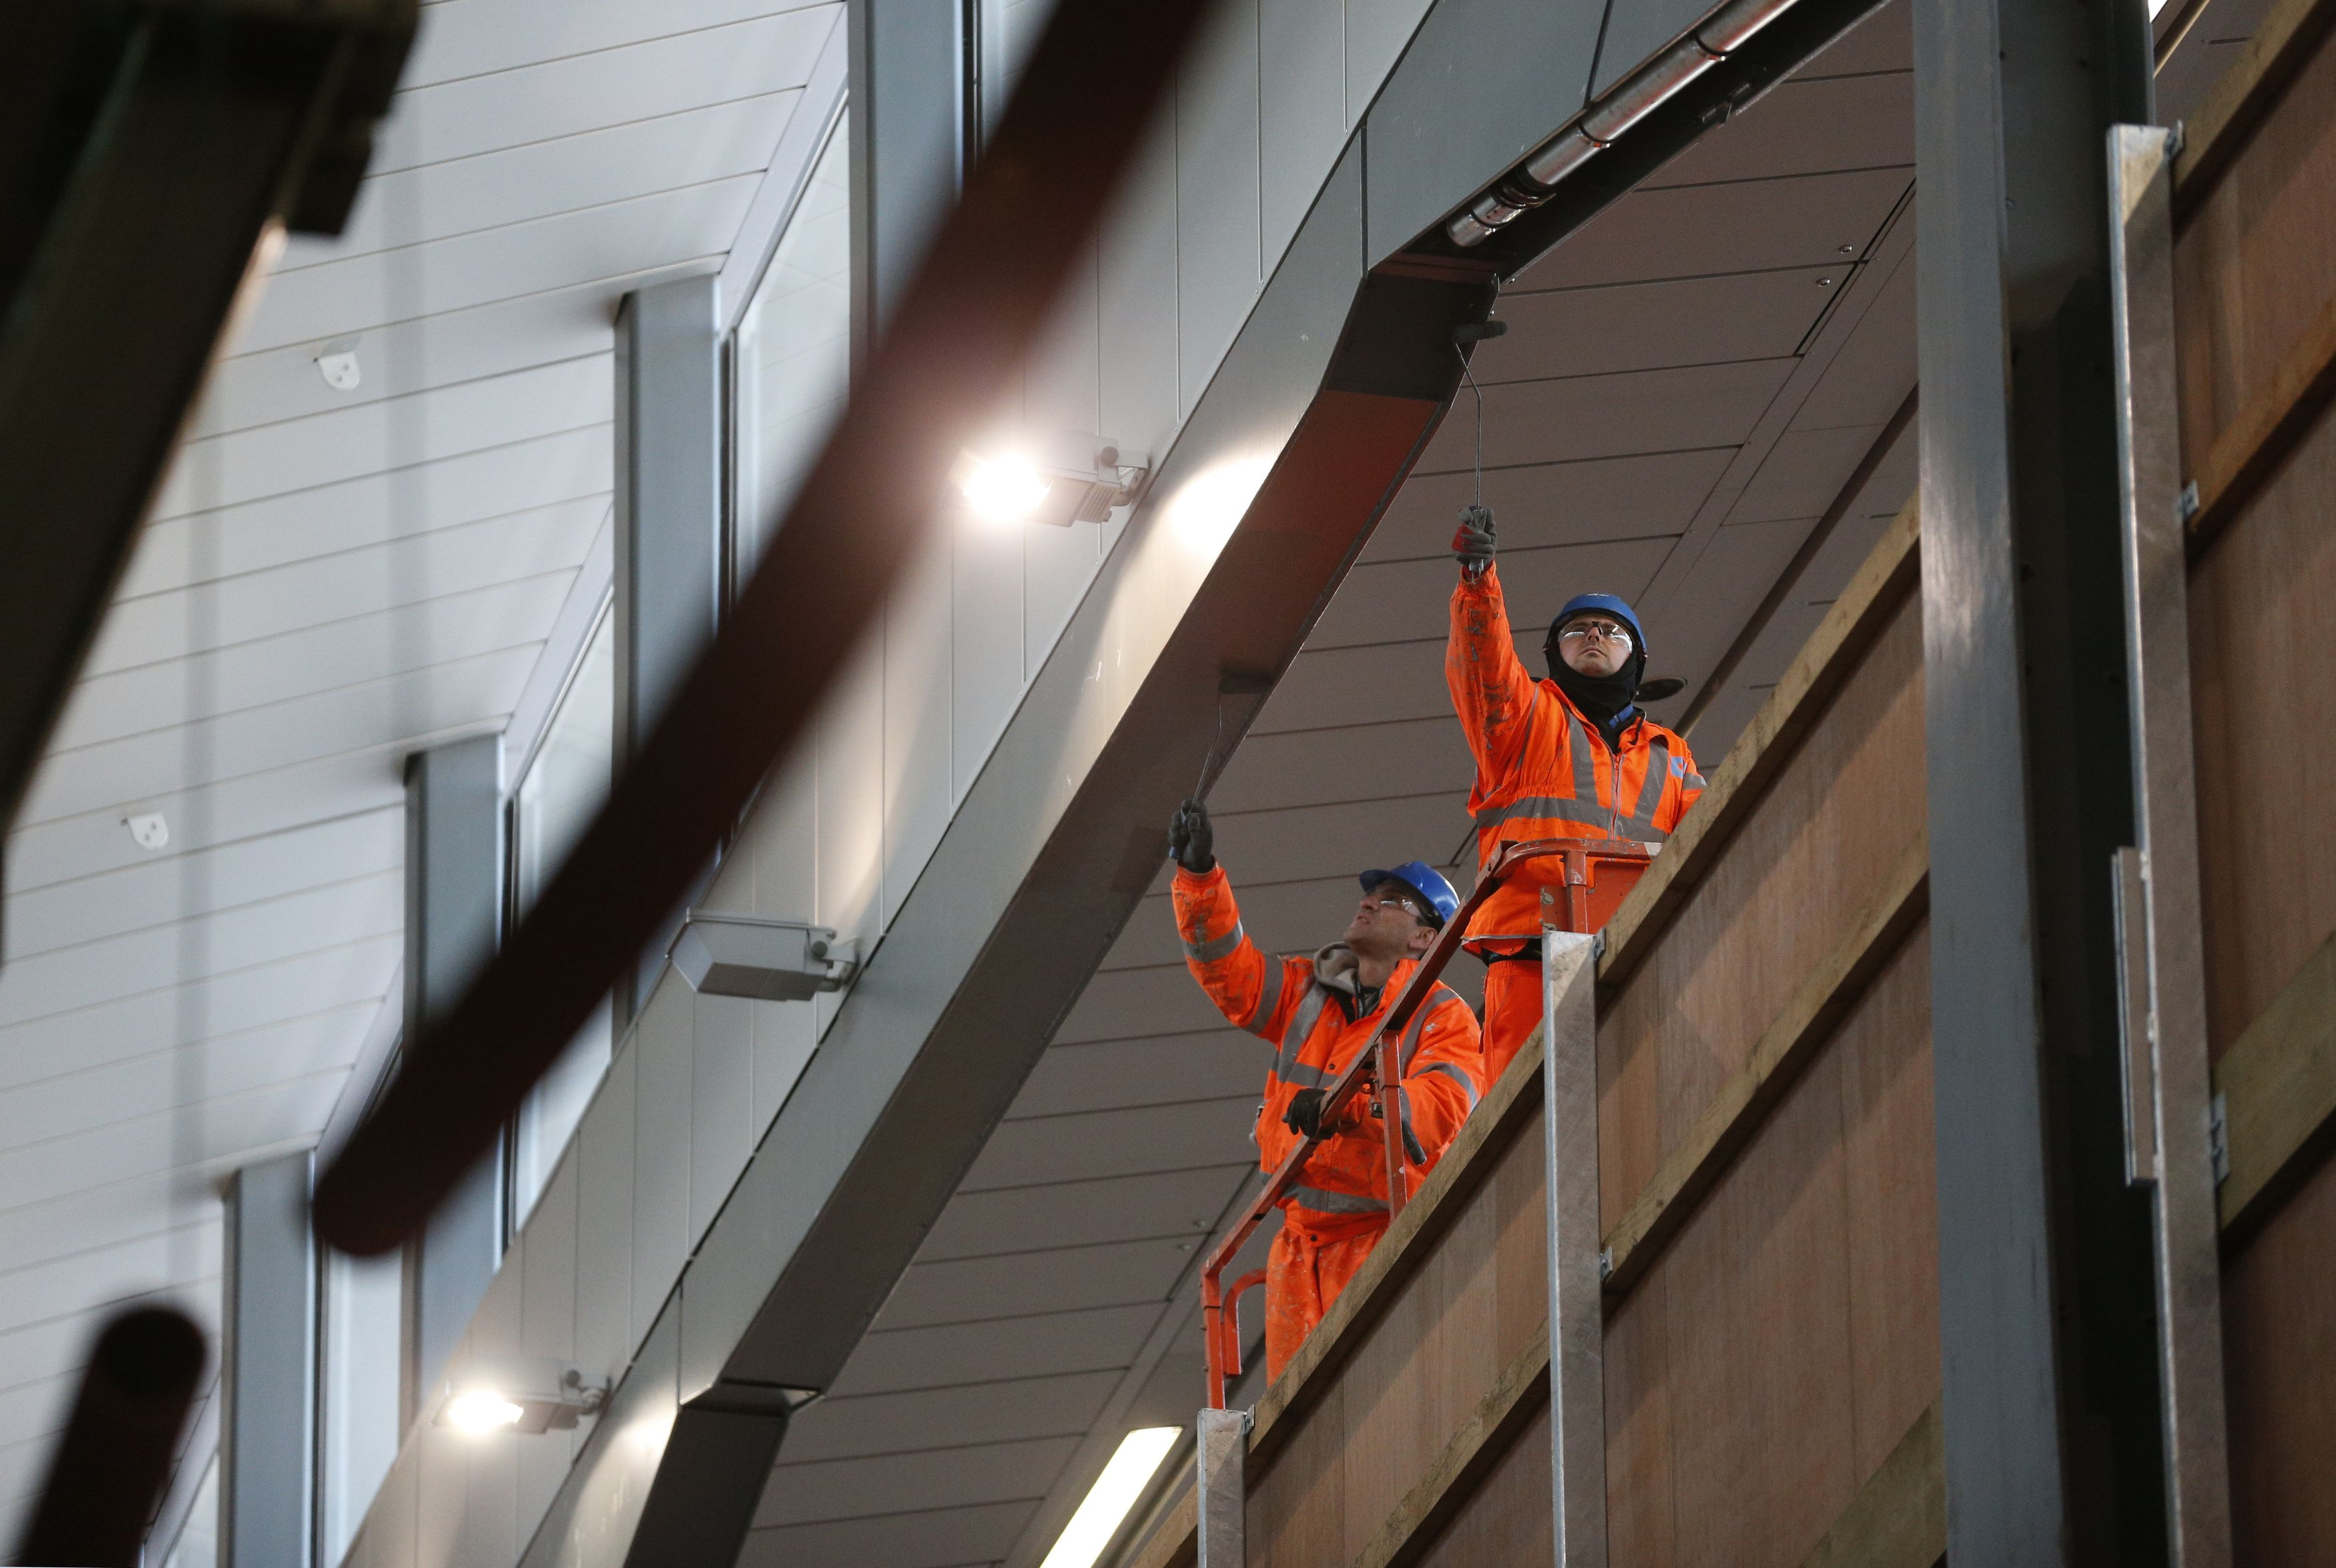 Workers paint steelwork along the new platform ten at London Bridge railway station, Southwark, London as the capital's oldest station undergoes rebuilding as part of the �6.5bn Thameslink Programme. PRESS ASSOCIATION Photo. Picture date: Monday November 24, 2014.  From Saturday 20 December 2014 to Sunday 4 January 2015 inclusive, Southern and Thameslink trains will not call at London Bridge. Also, from Monday 22 to Wednesday 24 December some Southeastern Charing Cross services will not call at London Bridge in the morning peak as work continues. Photo credit should read: Jonathan Brady/PA Wire